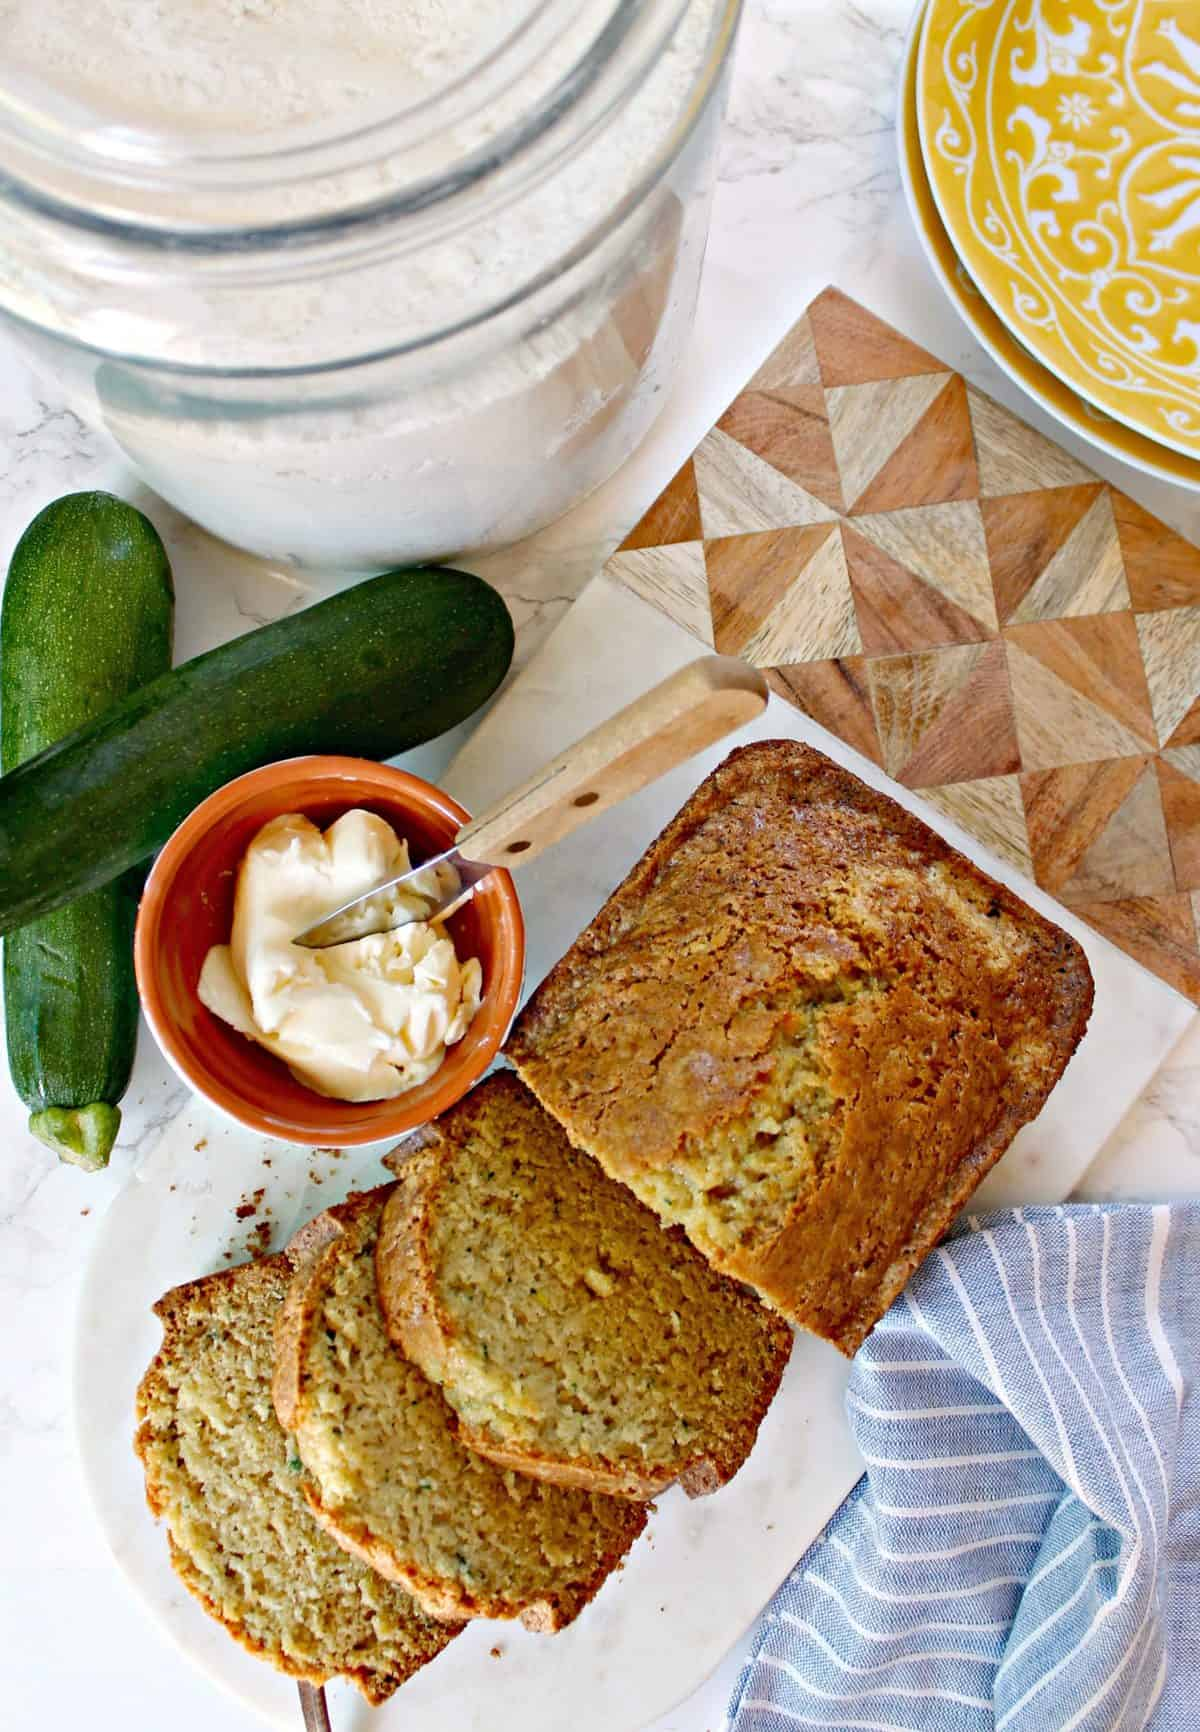 Overhead shot of sliced Zucchini Bread on a marble board with a blue linen napkin, small bowl of butter and whole zucchinis.